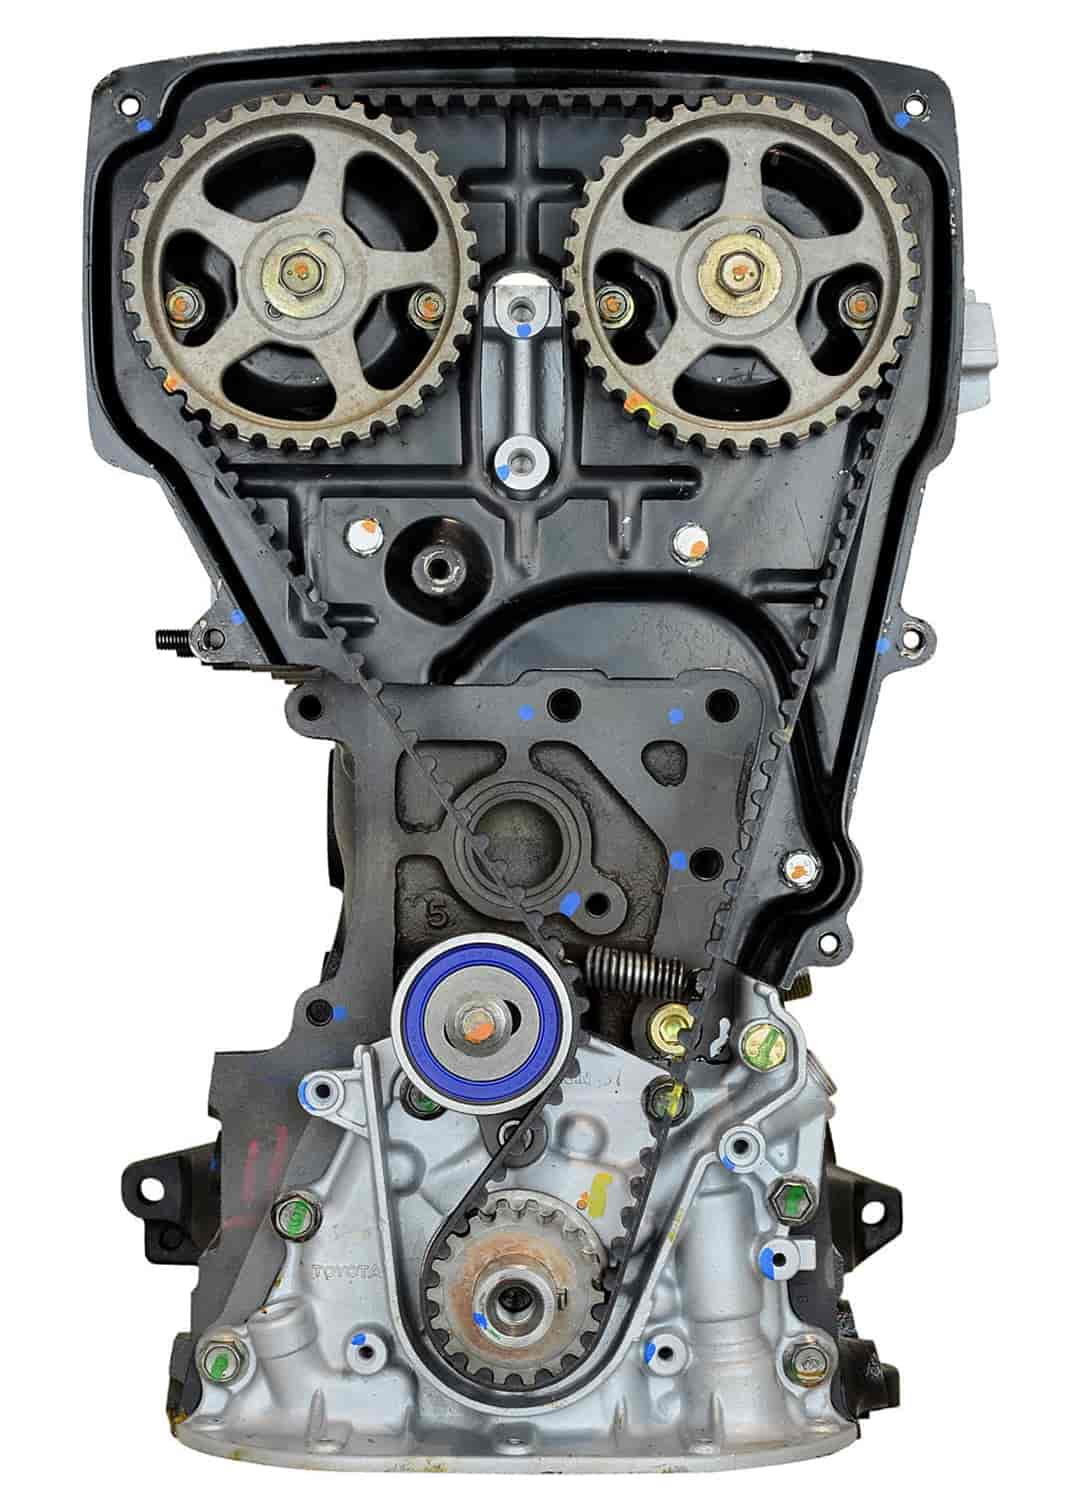 ATK Engines Remanufactured Crate Engine for 1987-1989 Toyota Corolla with  1 6L L4 4AGE